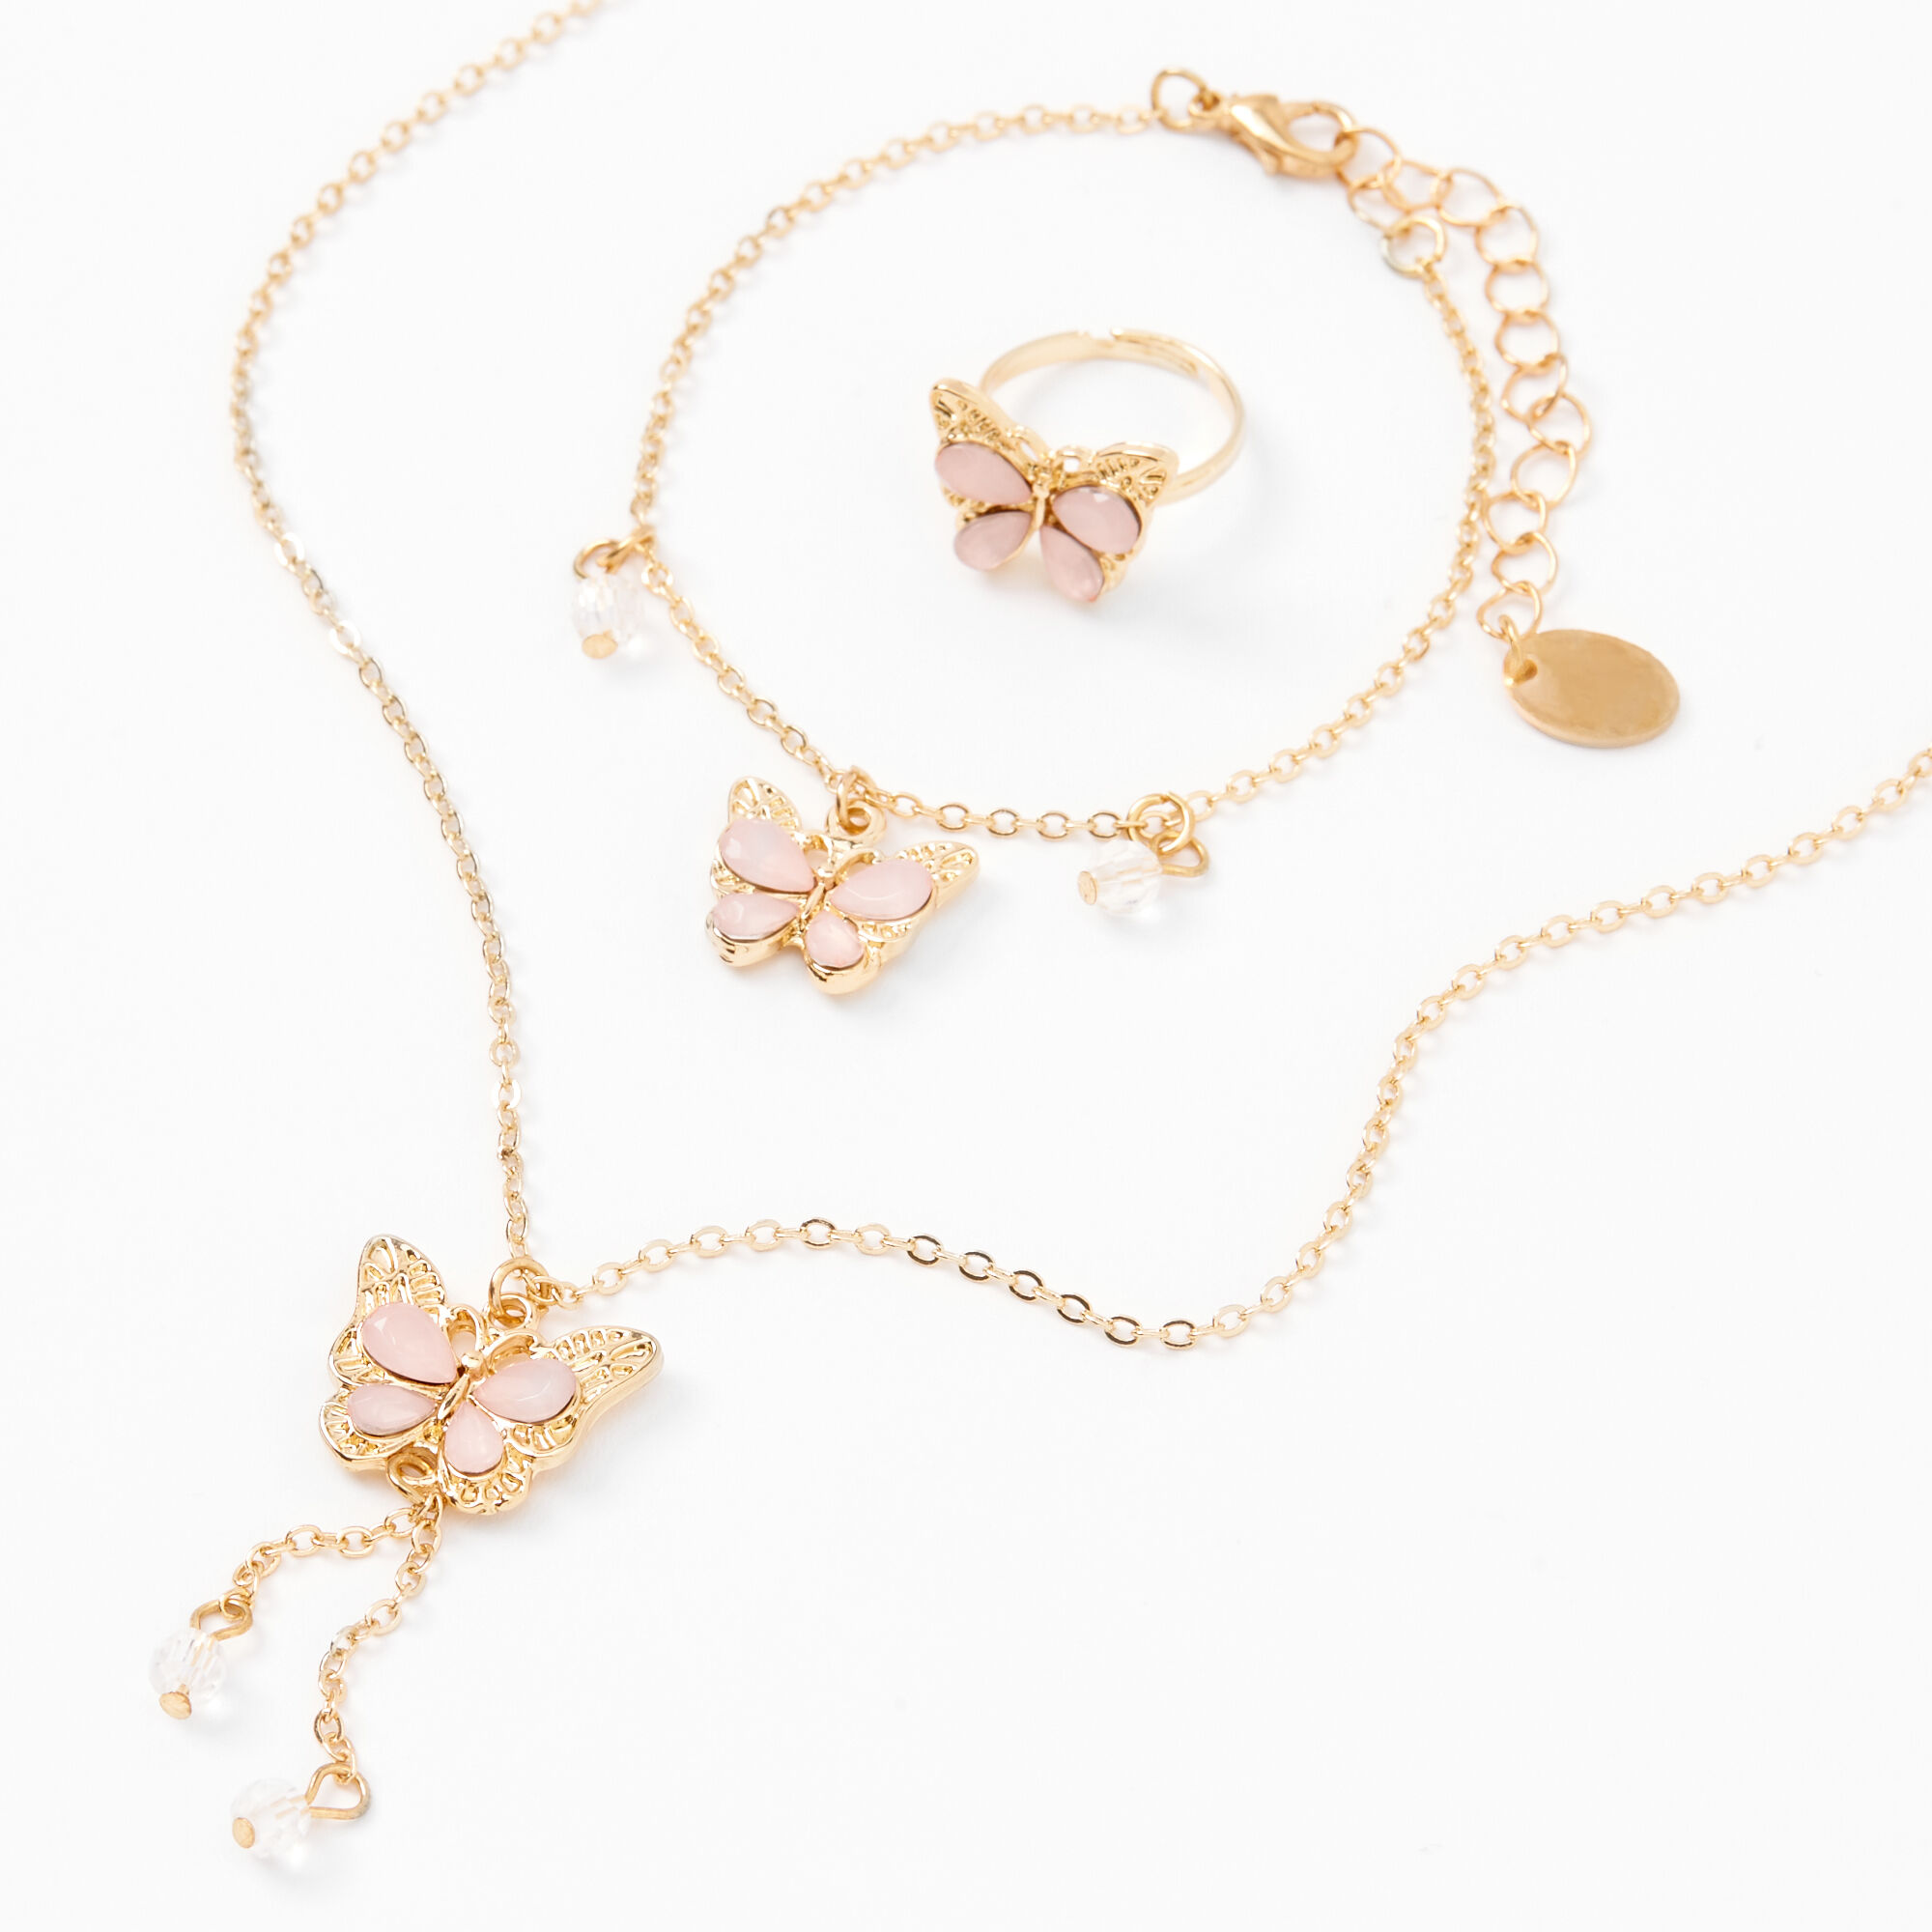 Gold Clipons Available Rose Gold Chain Gift Treat Yourself Great Gift for Her Butterfly NecklaceEarrings Set Anniversary Rose Beads